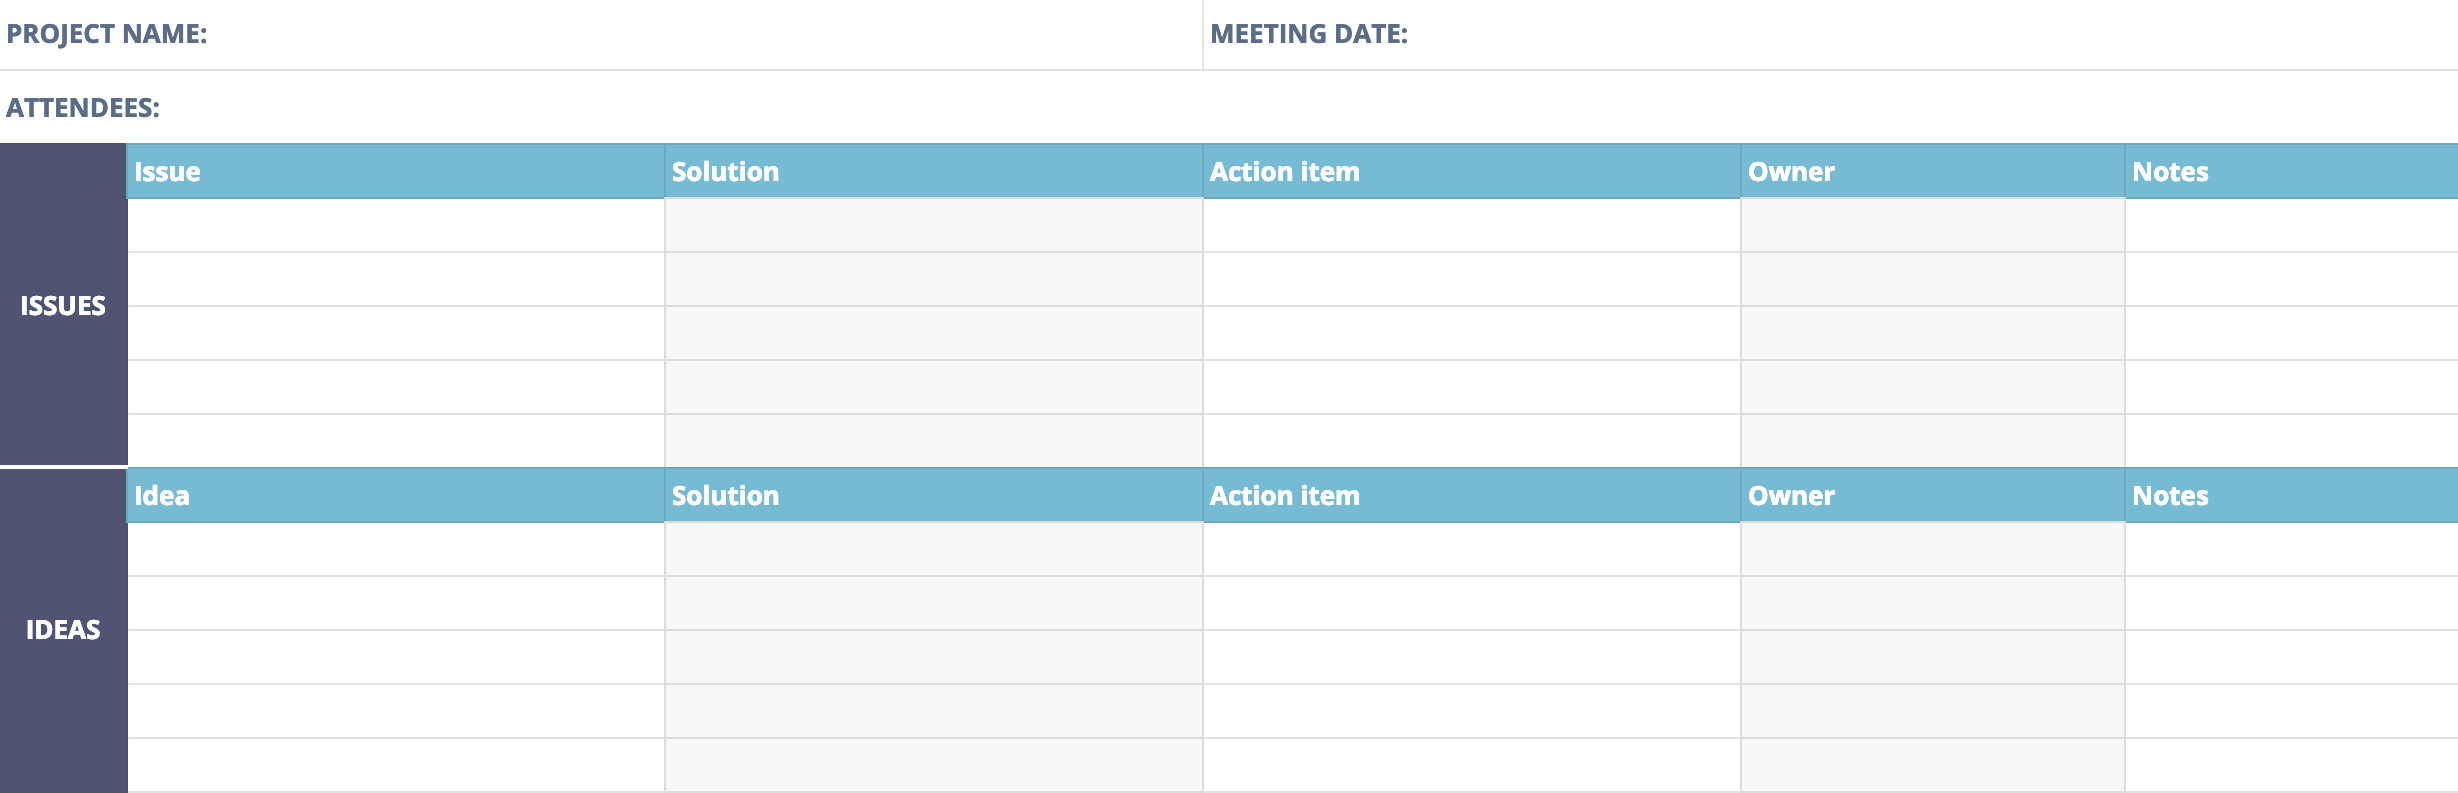 Post Mortem Meeting Template And Tips   Teamgantt Throughout Event Debrief Report Template